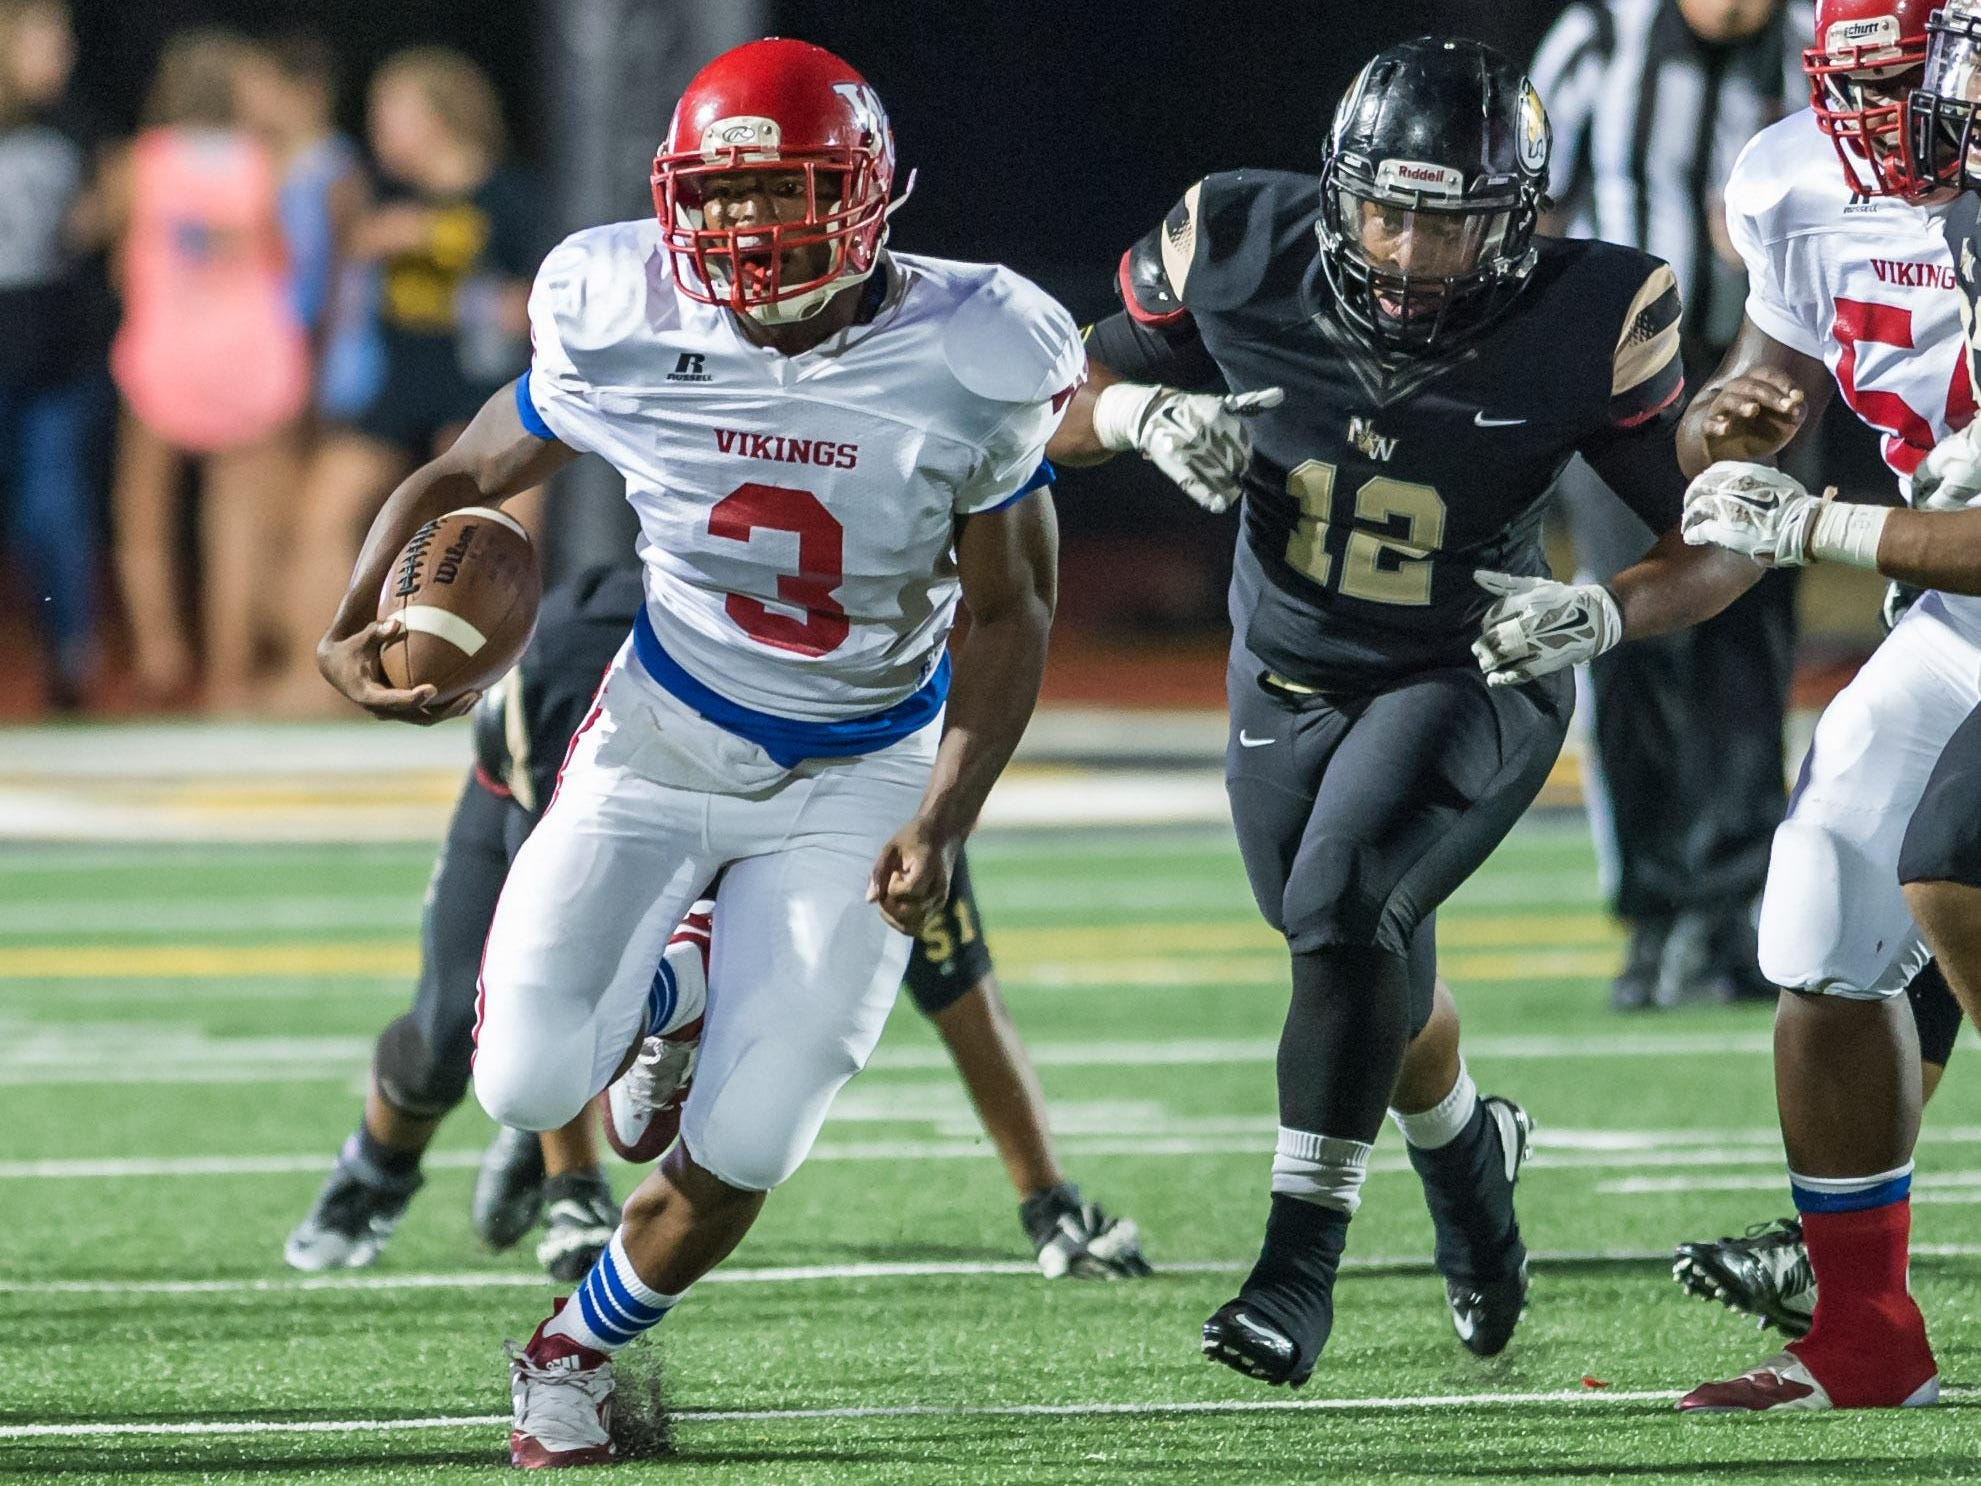 No. 9 Warren Central, which is spearheaded by running back Danarius Knight (3), will face Clinton, which checked in at No. 7 in the Super 10, this week.